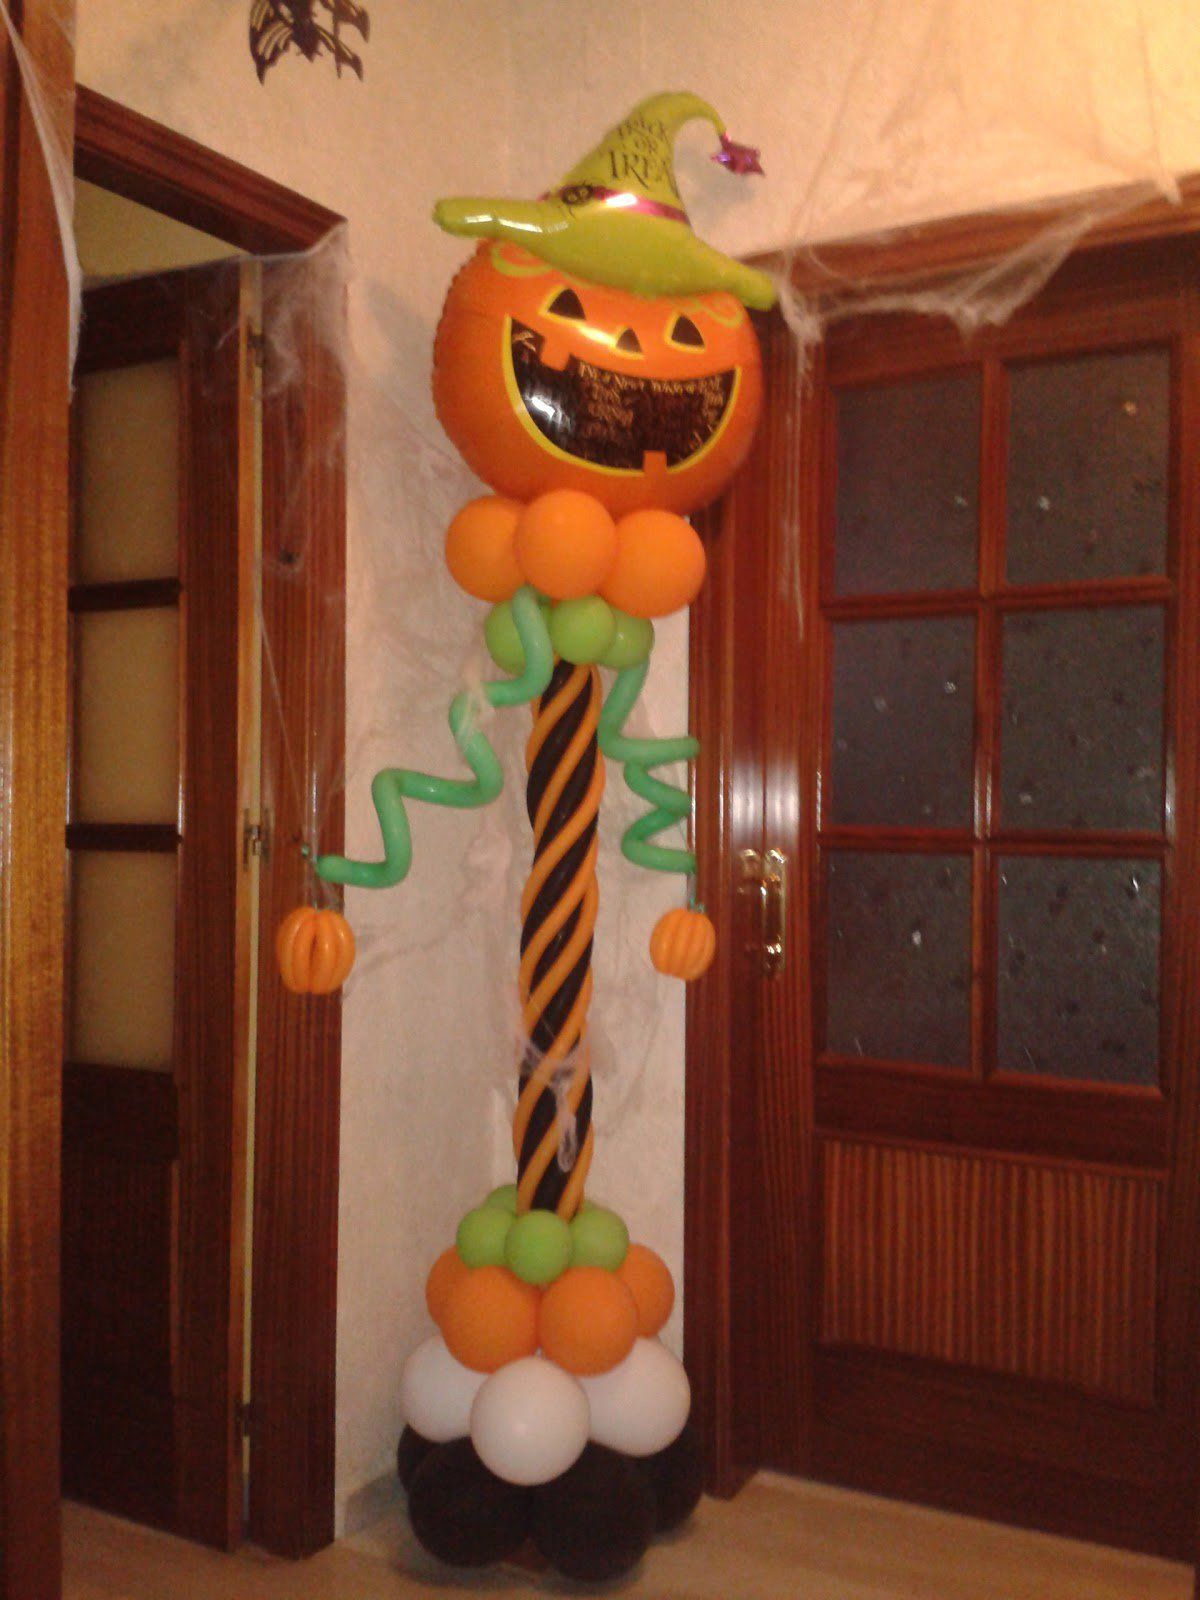 Columns For Decorations Balloon Columns And Arches Balloons Latexmylarbouquets